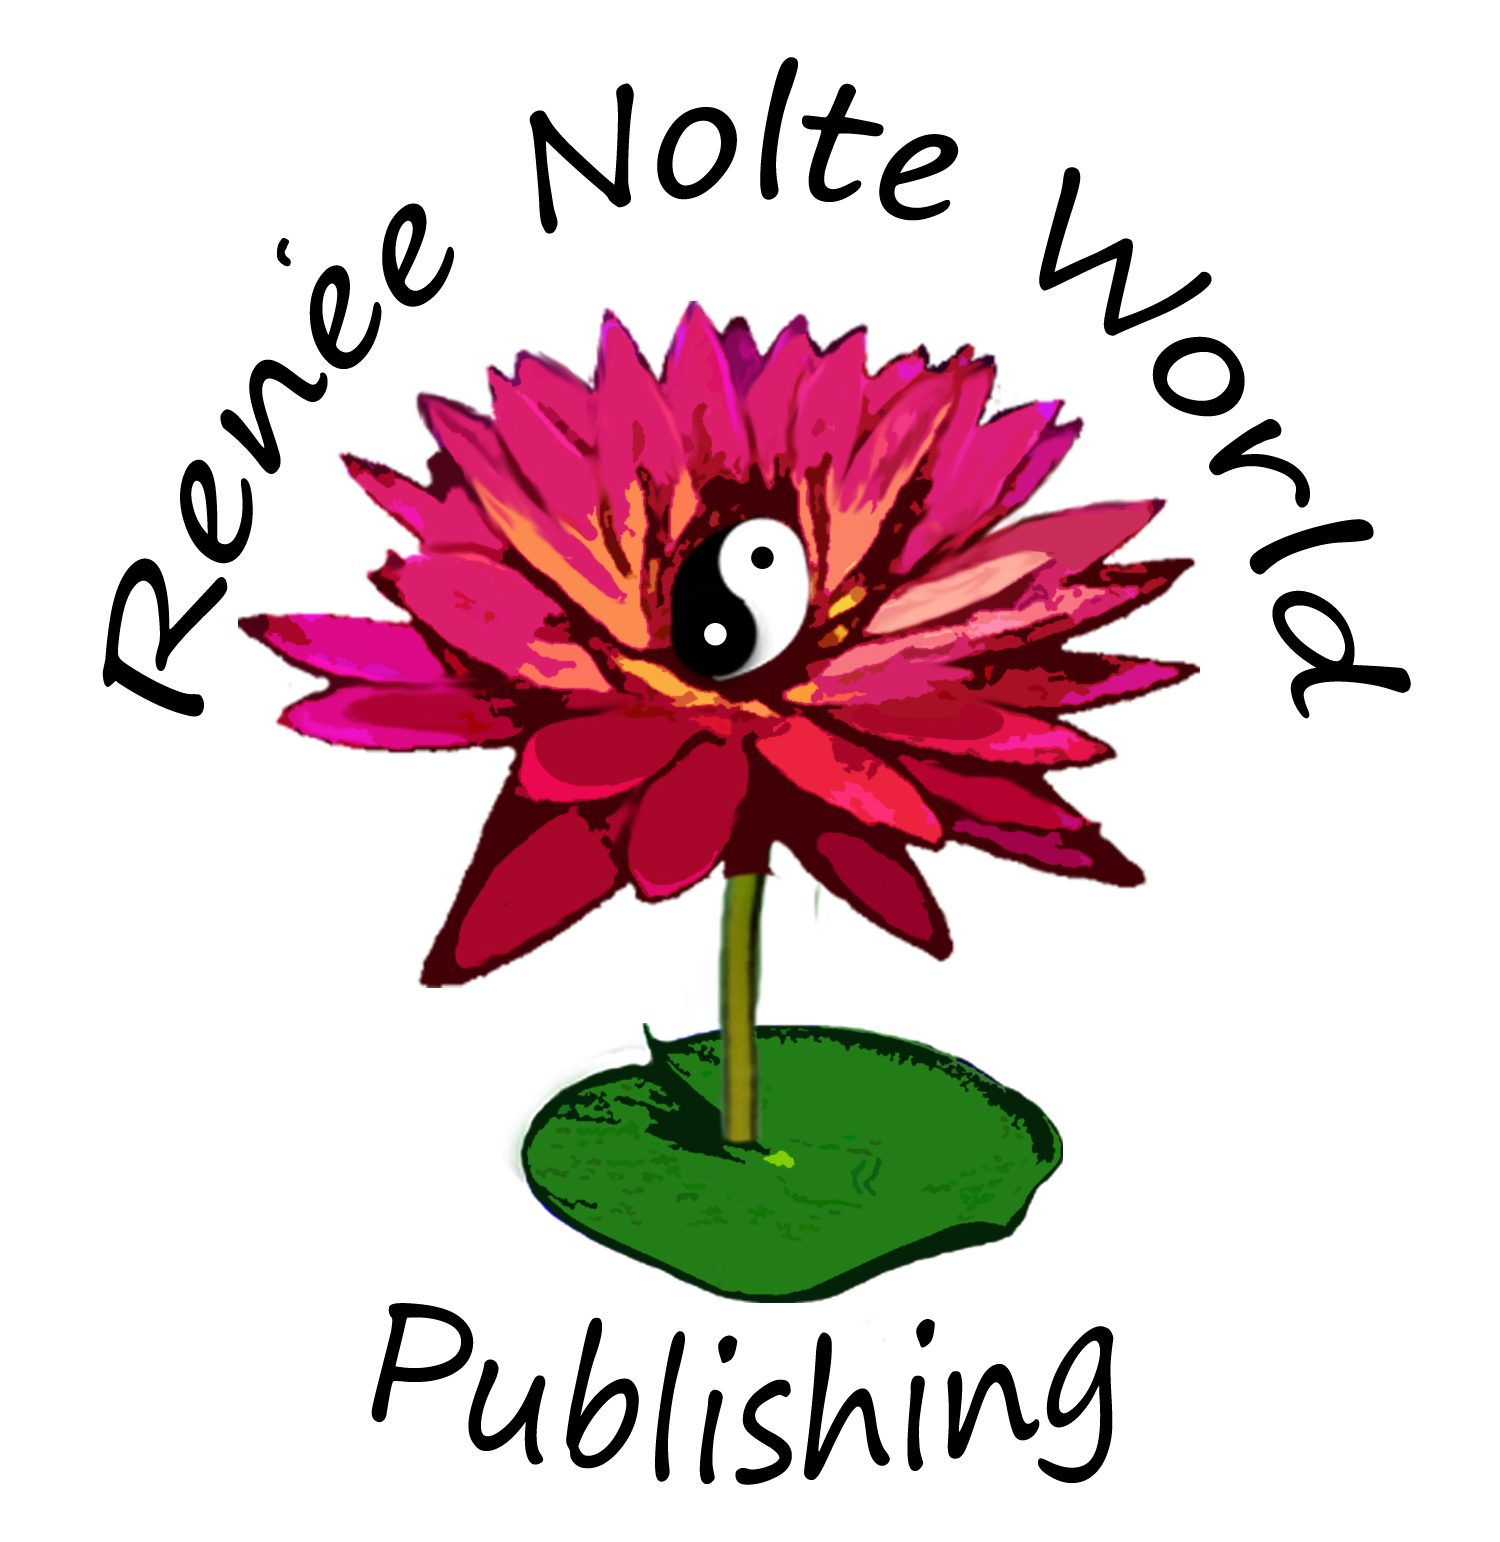 Renee Nolte World Publishing